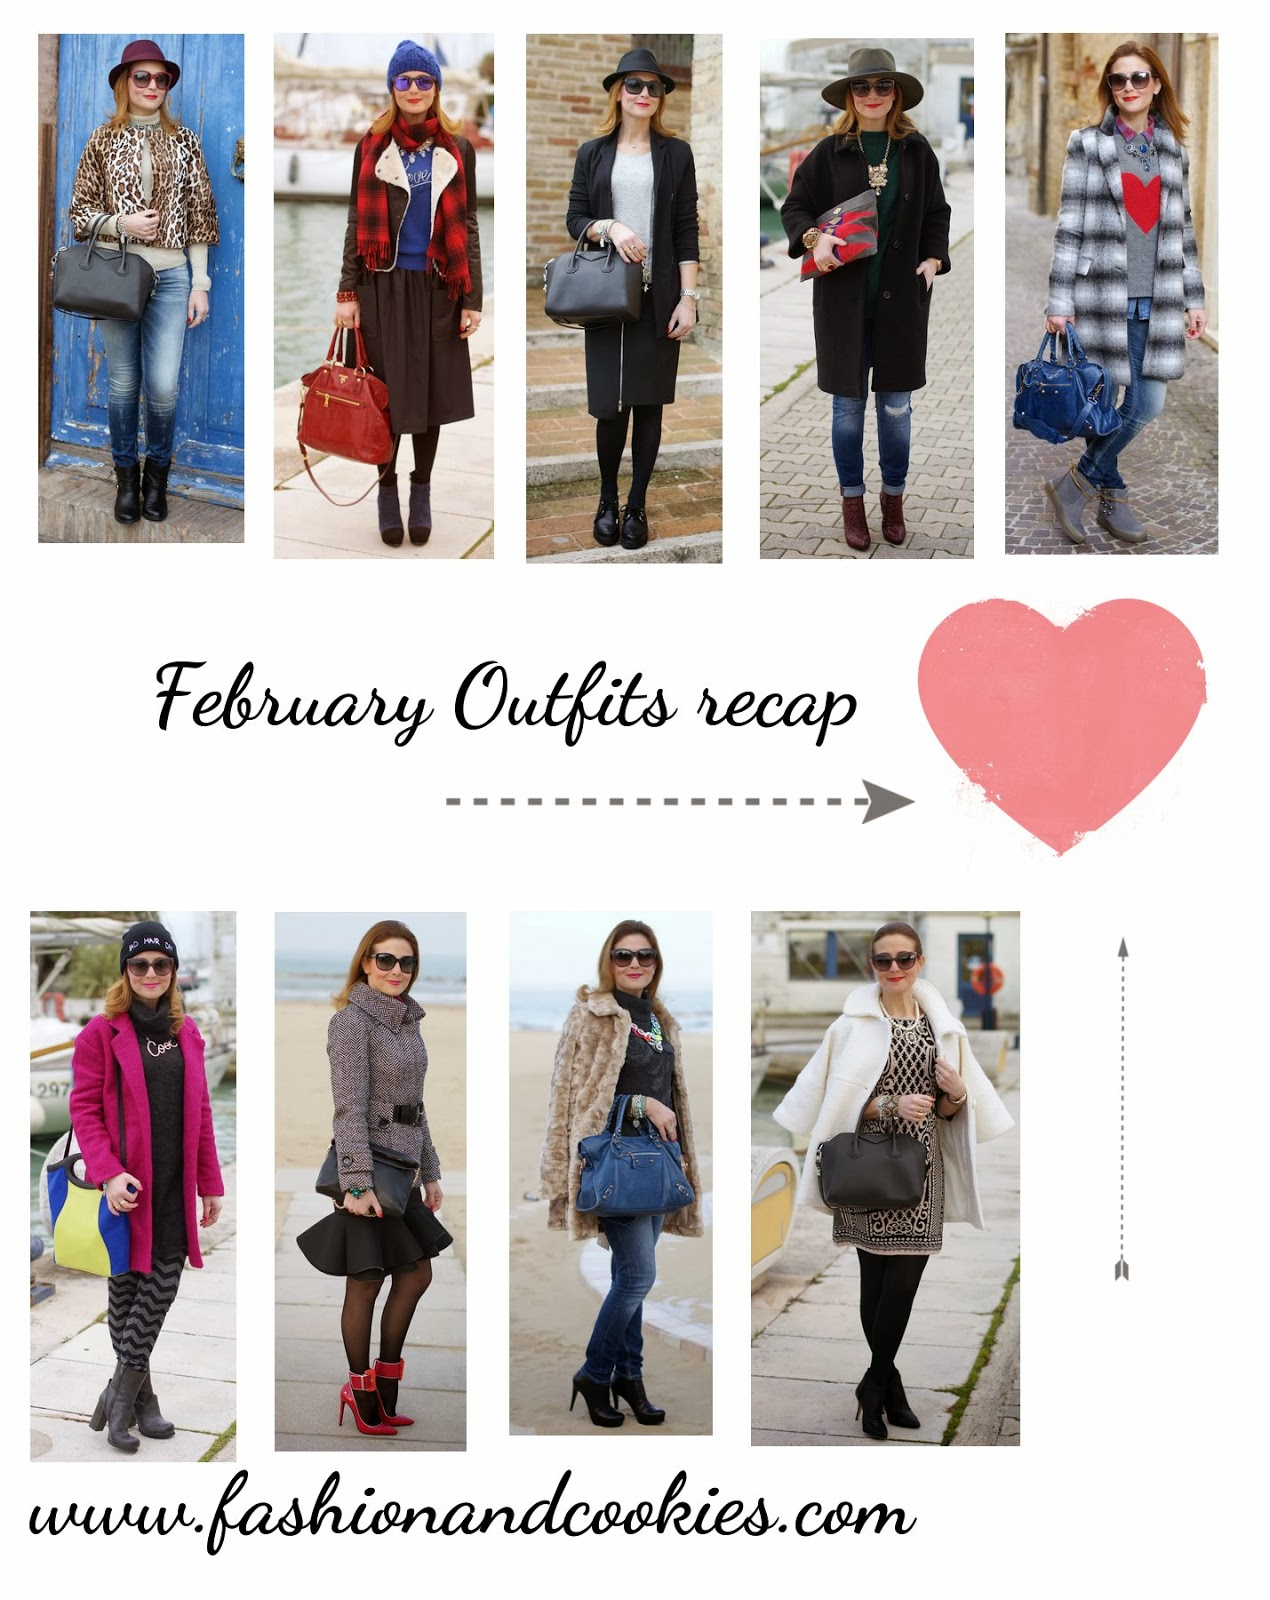 February Outfits recap on Fashion and Cookies, Hello March